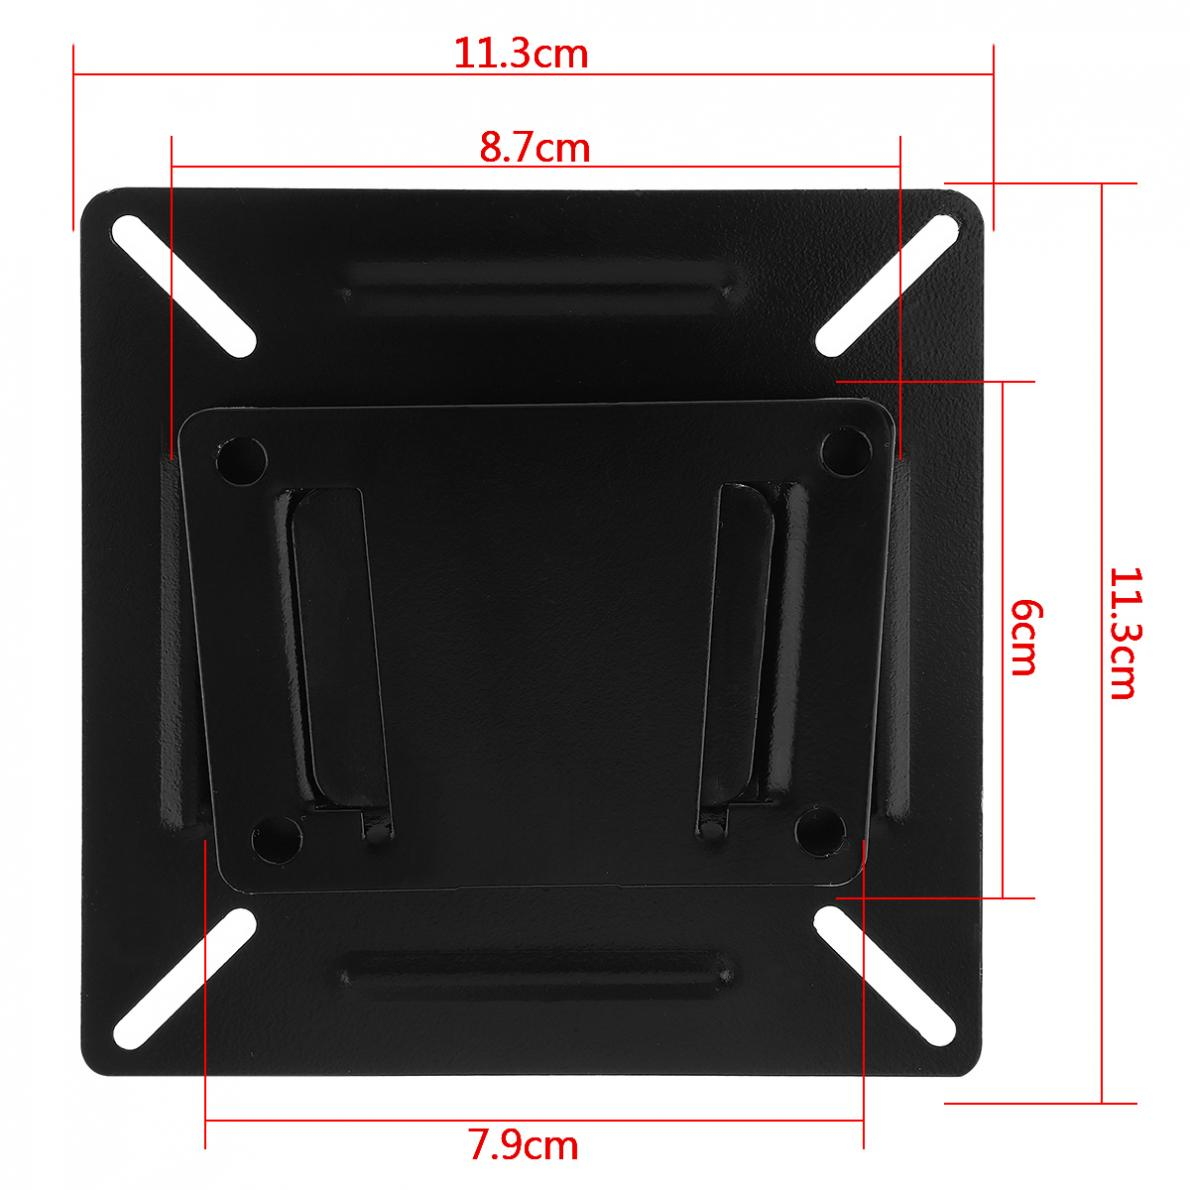 Universal Tv Wall Mount Bracket Tv Stand Holder For 14 24 Inch Lcd